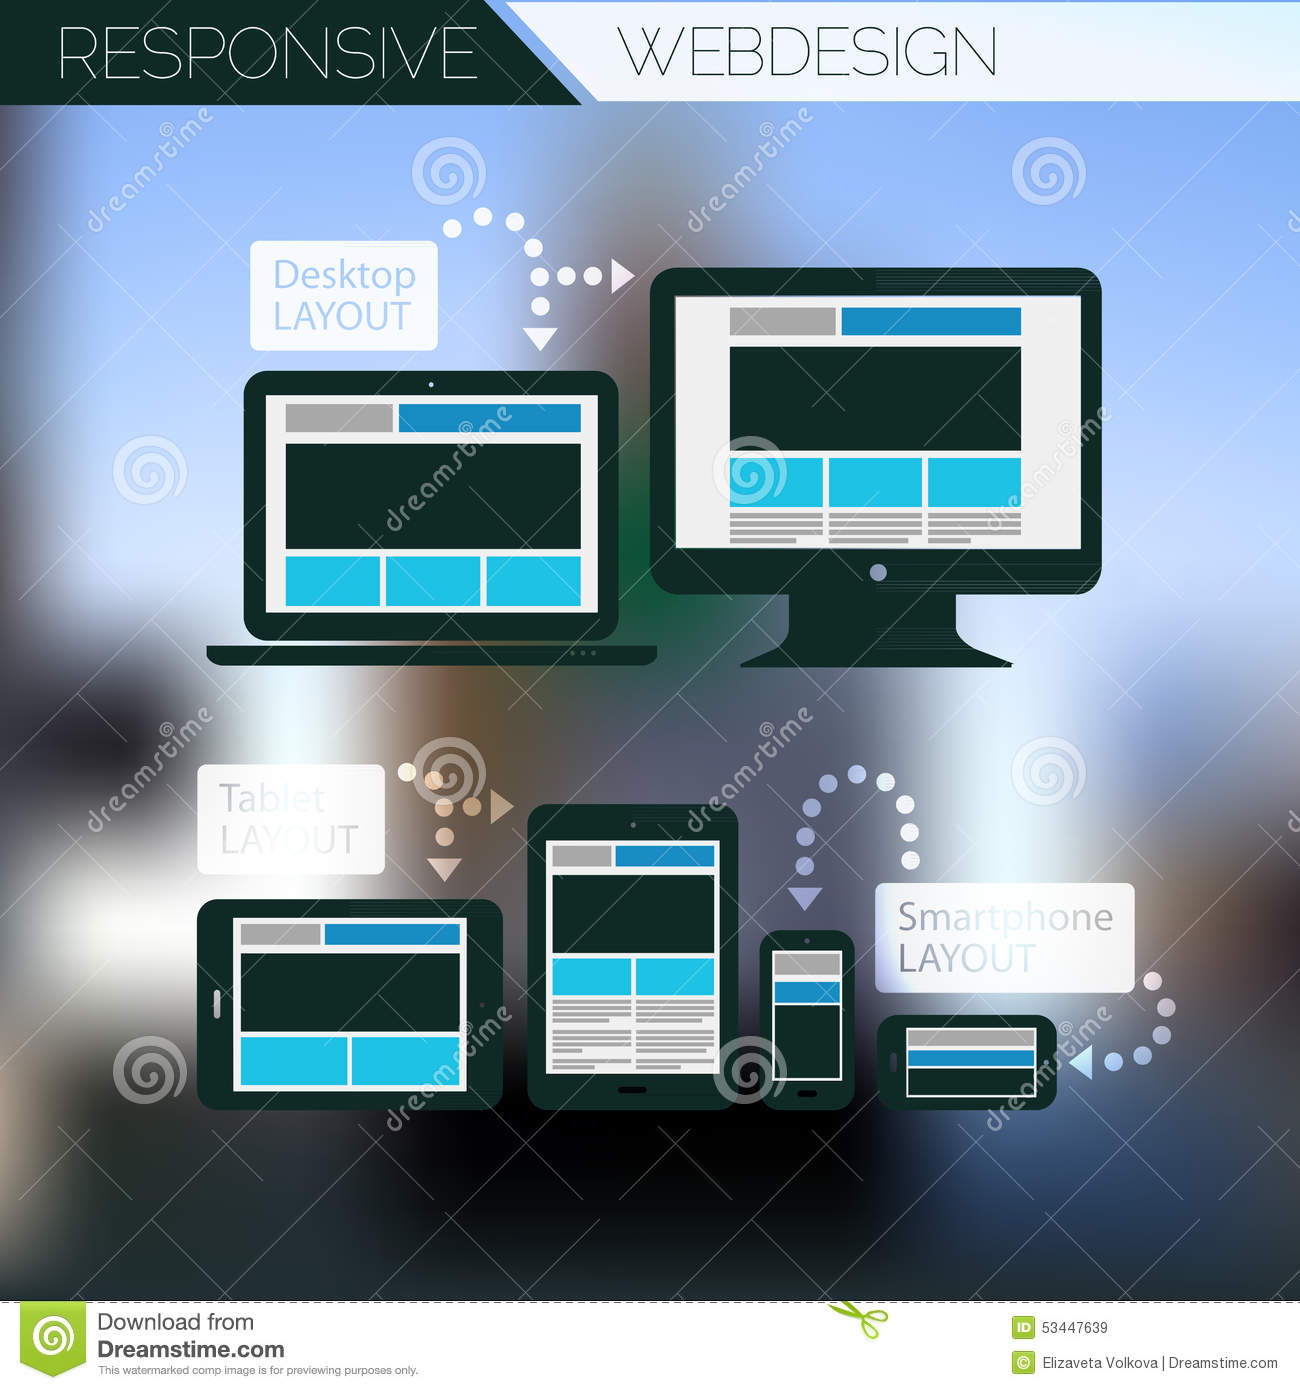 Responsive Webdesign Technology Page Design Template Concept Stock